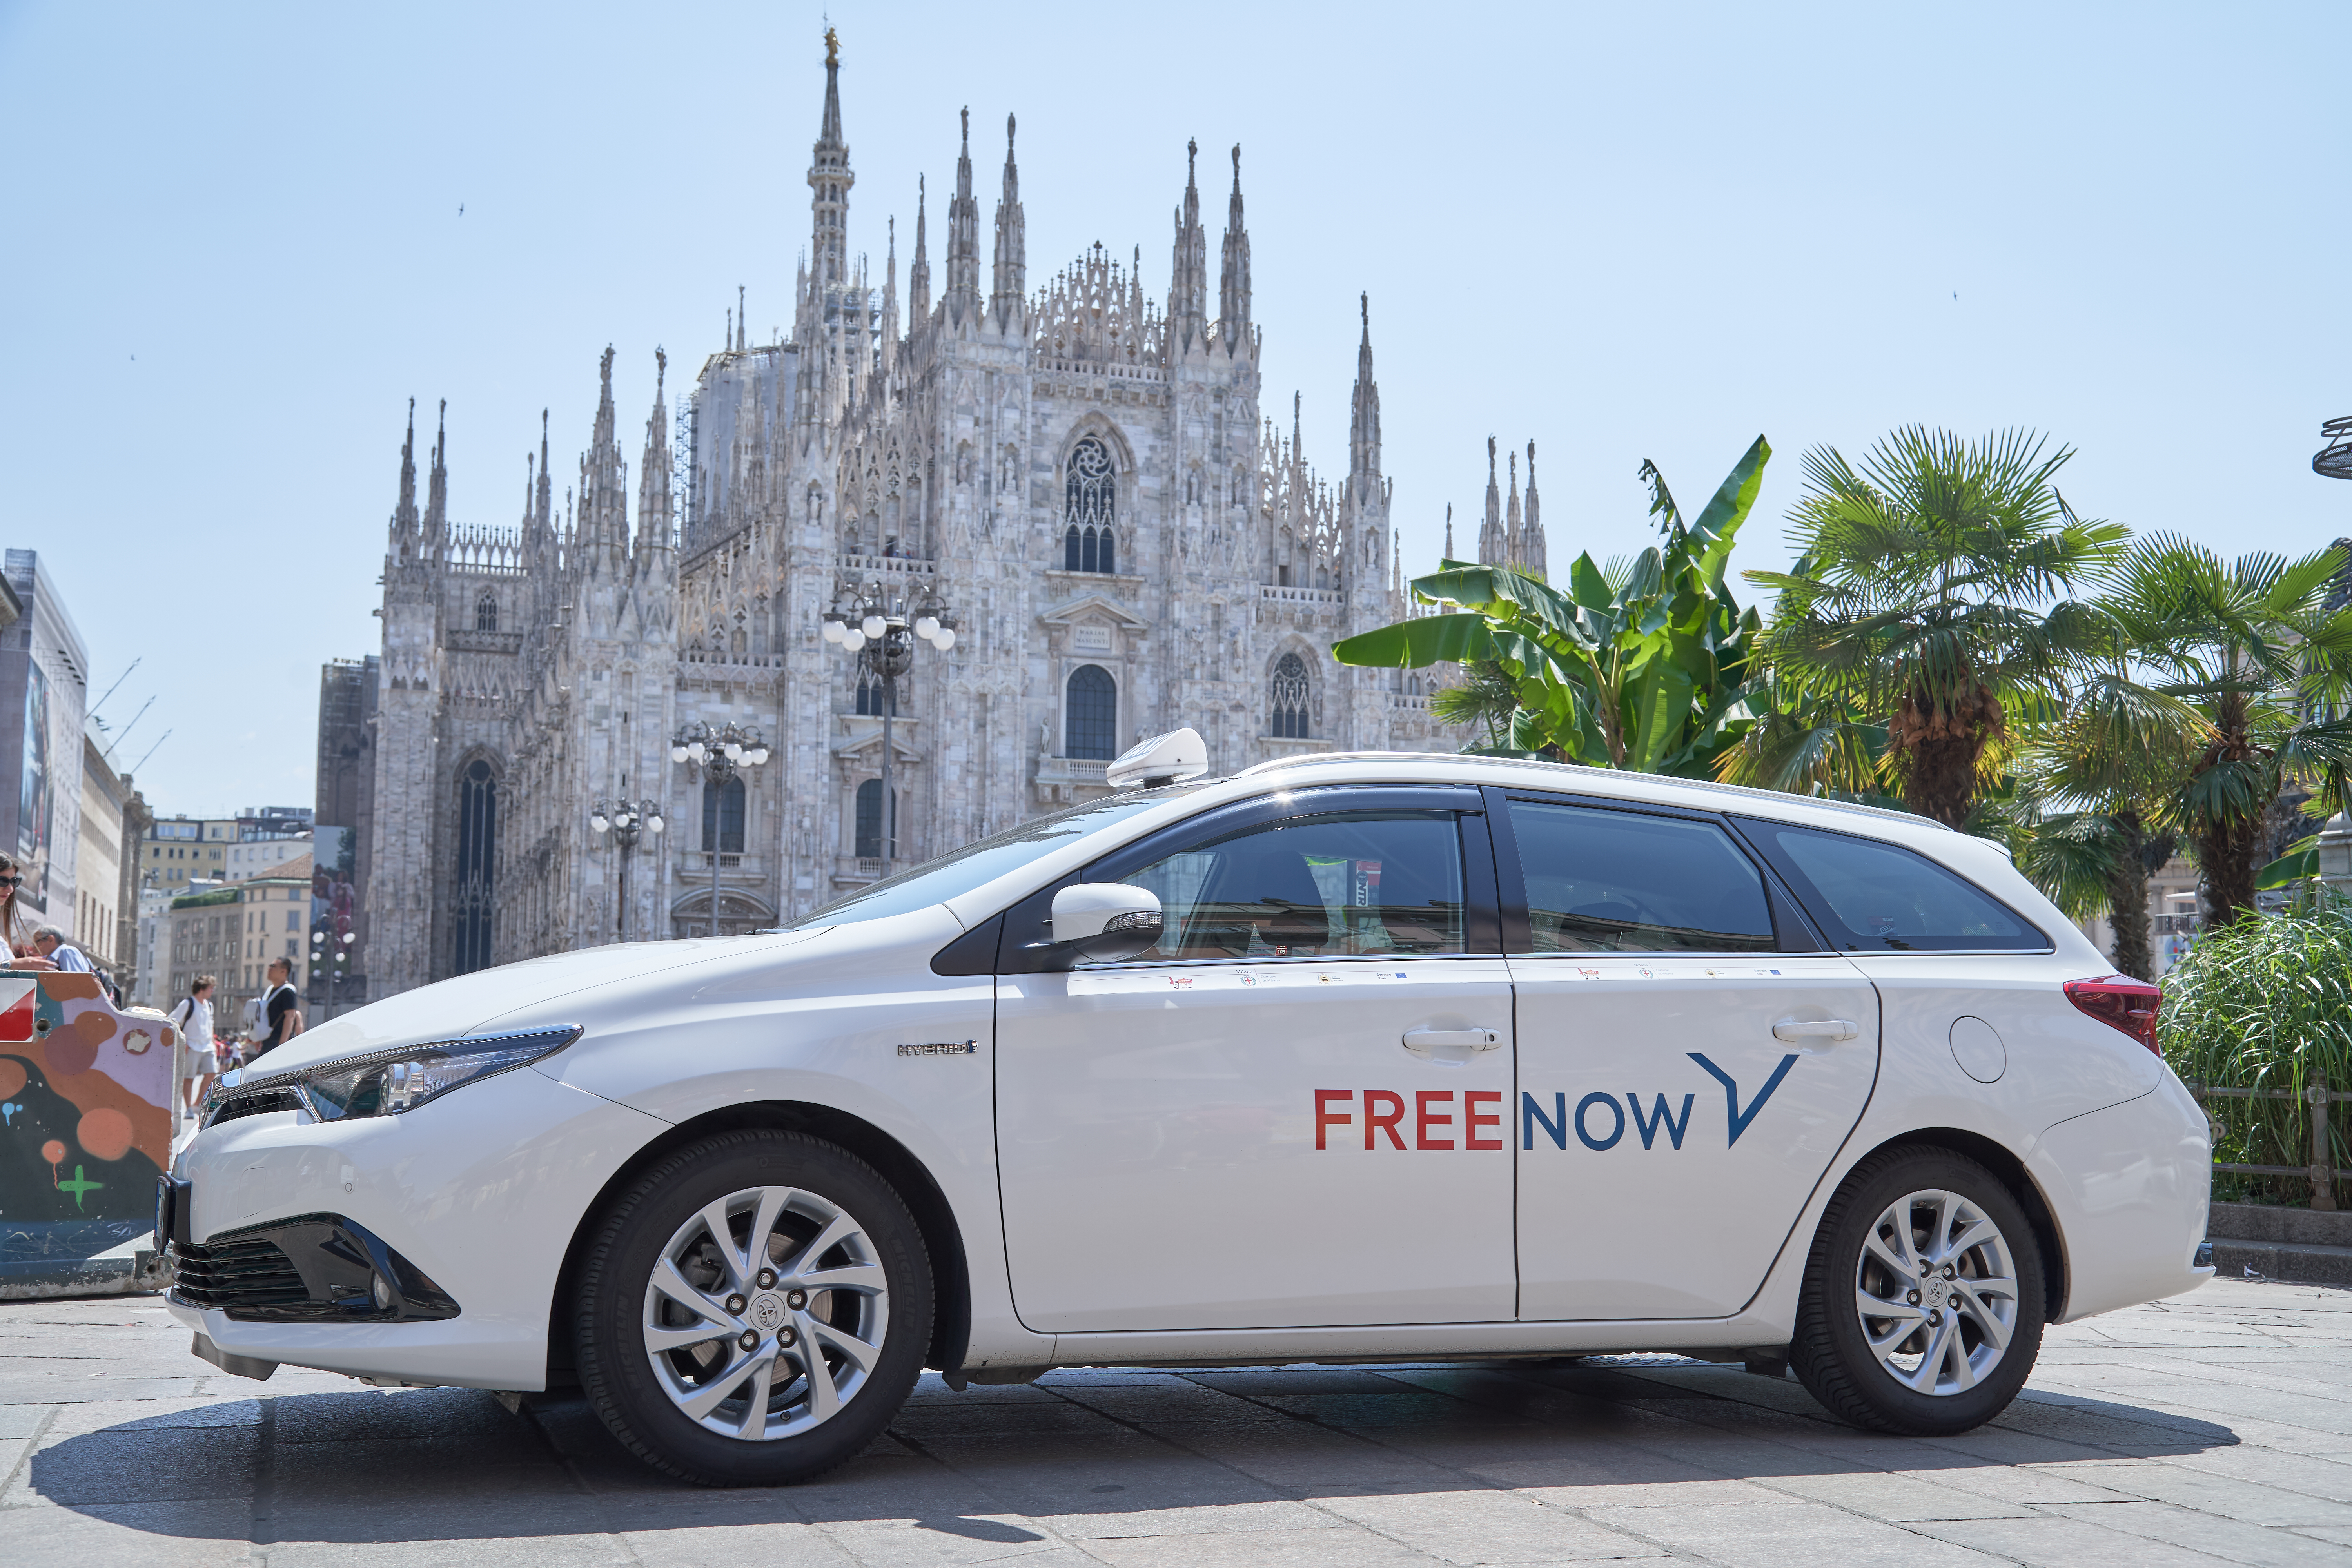 Free Now arriva a Milano